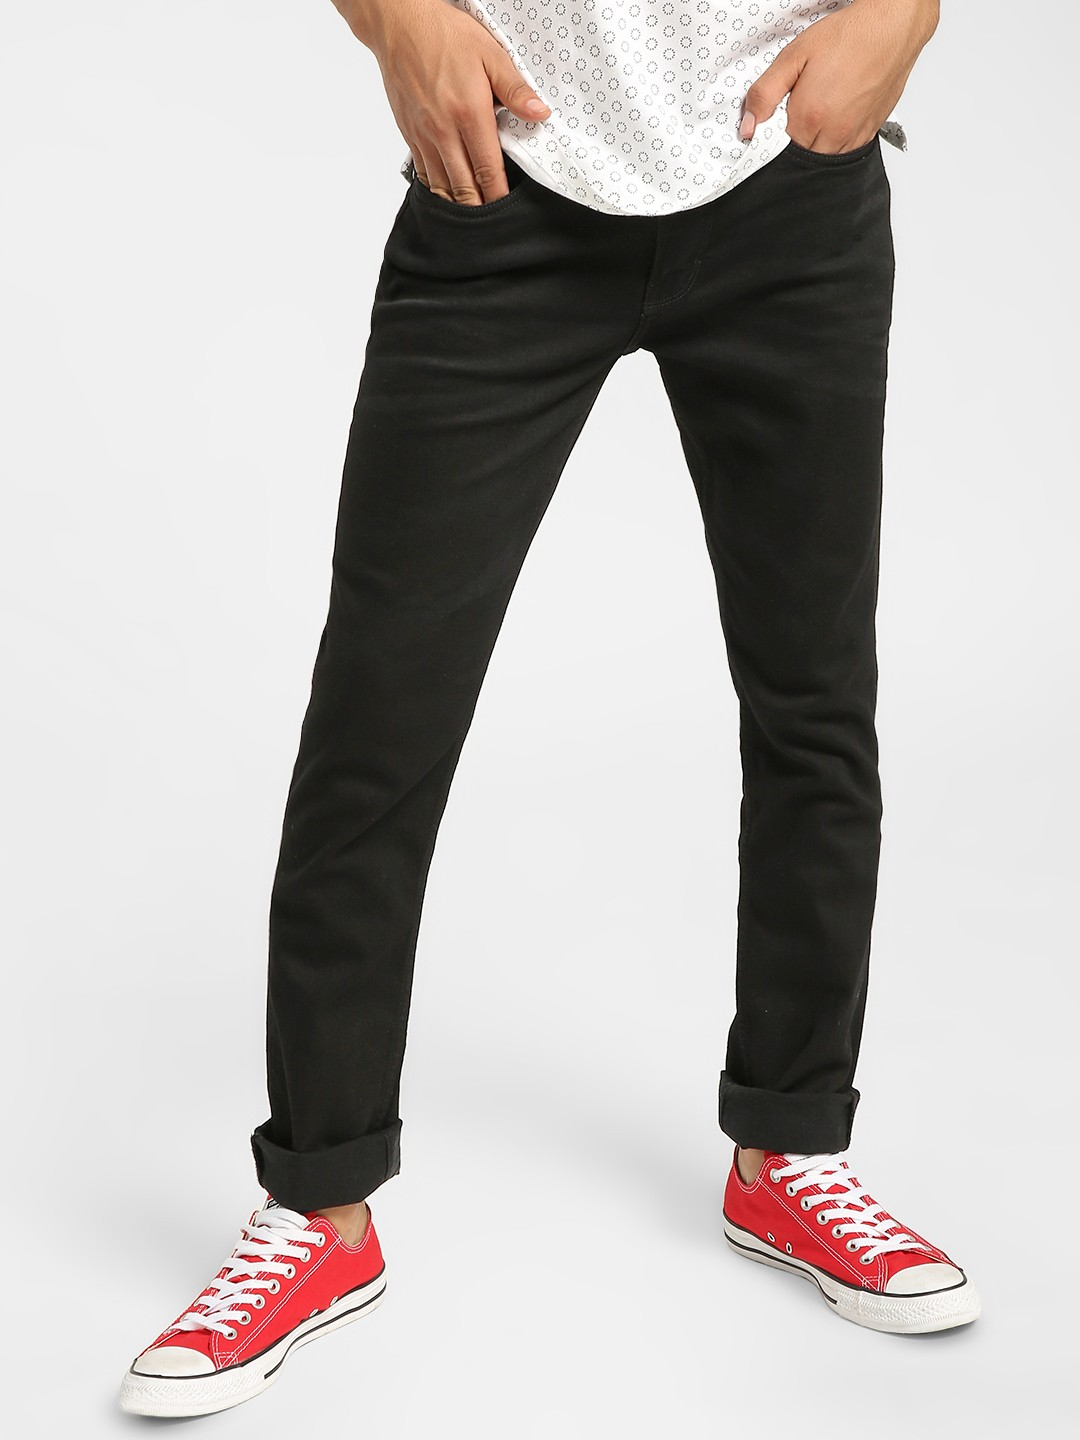 UMM Black Basic Slim Jeans 1